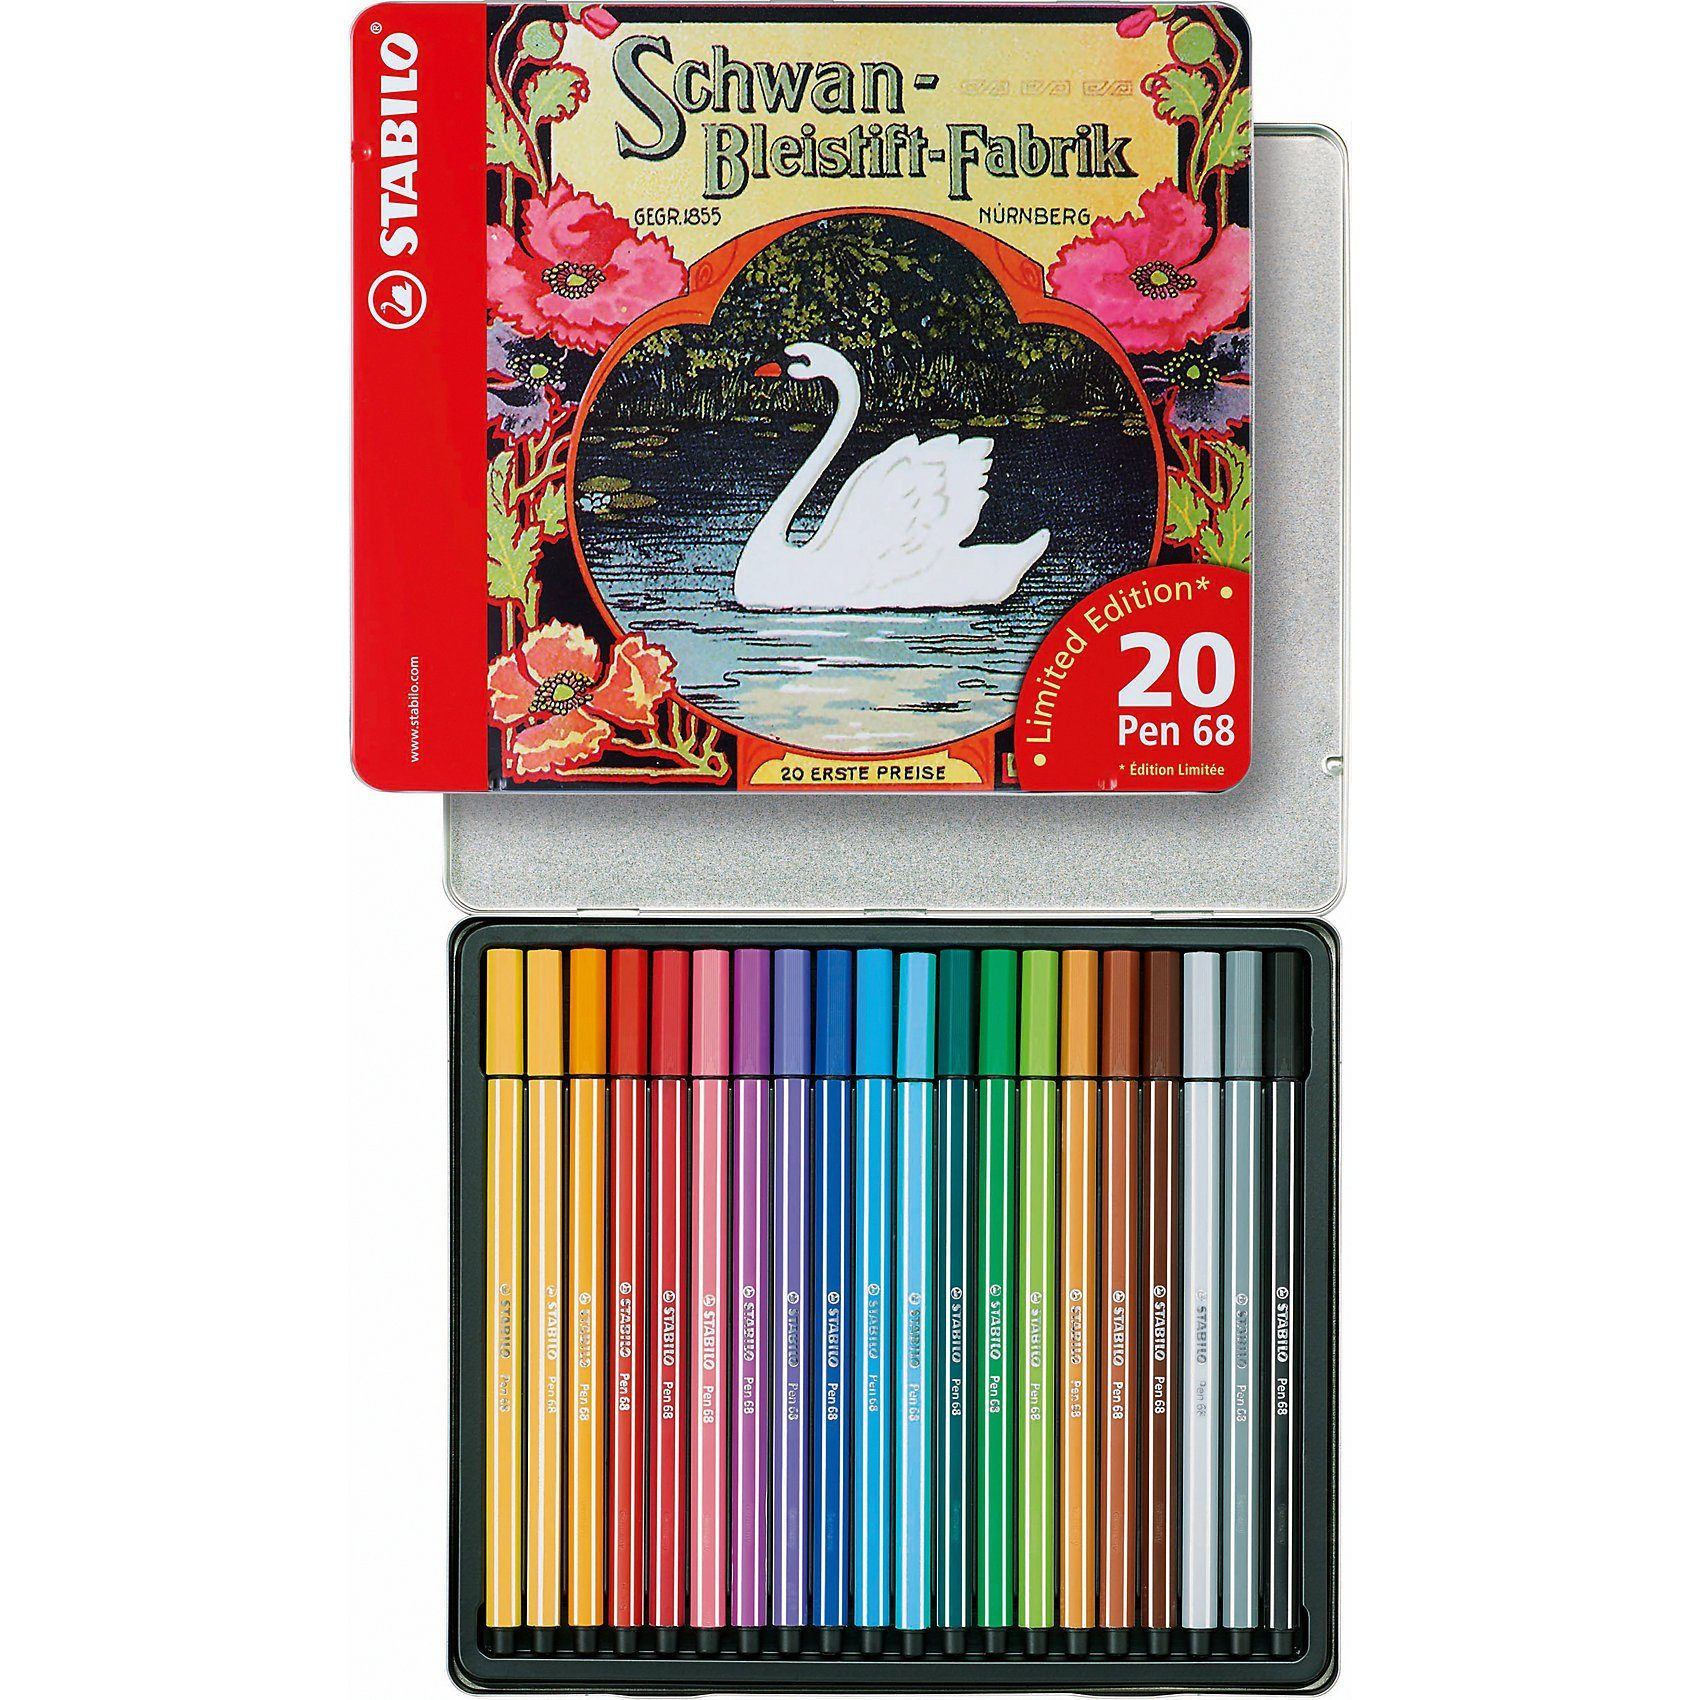 Stabilo LIMITED EDITION Filzstifte Pen 68 Schwan, 20 Farben, Metalle